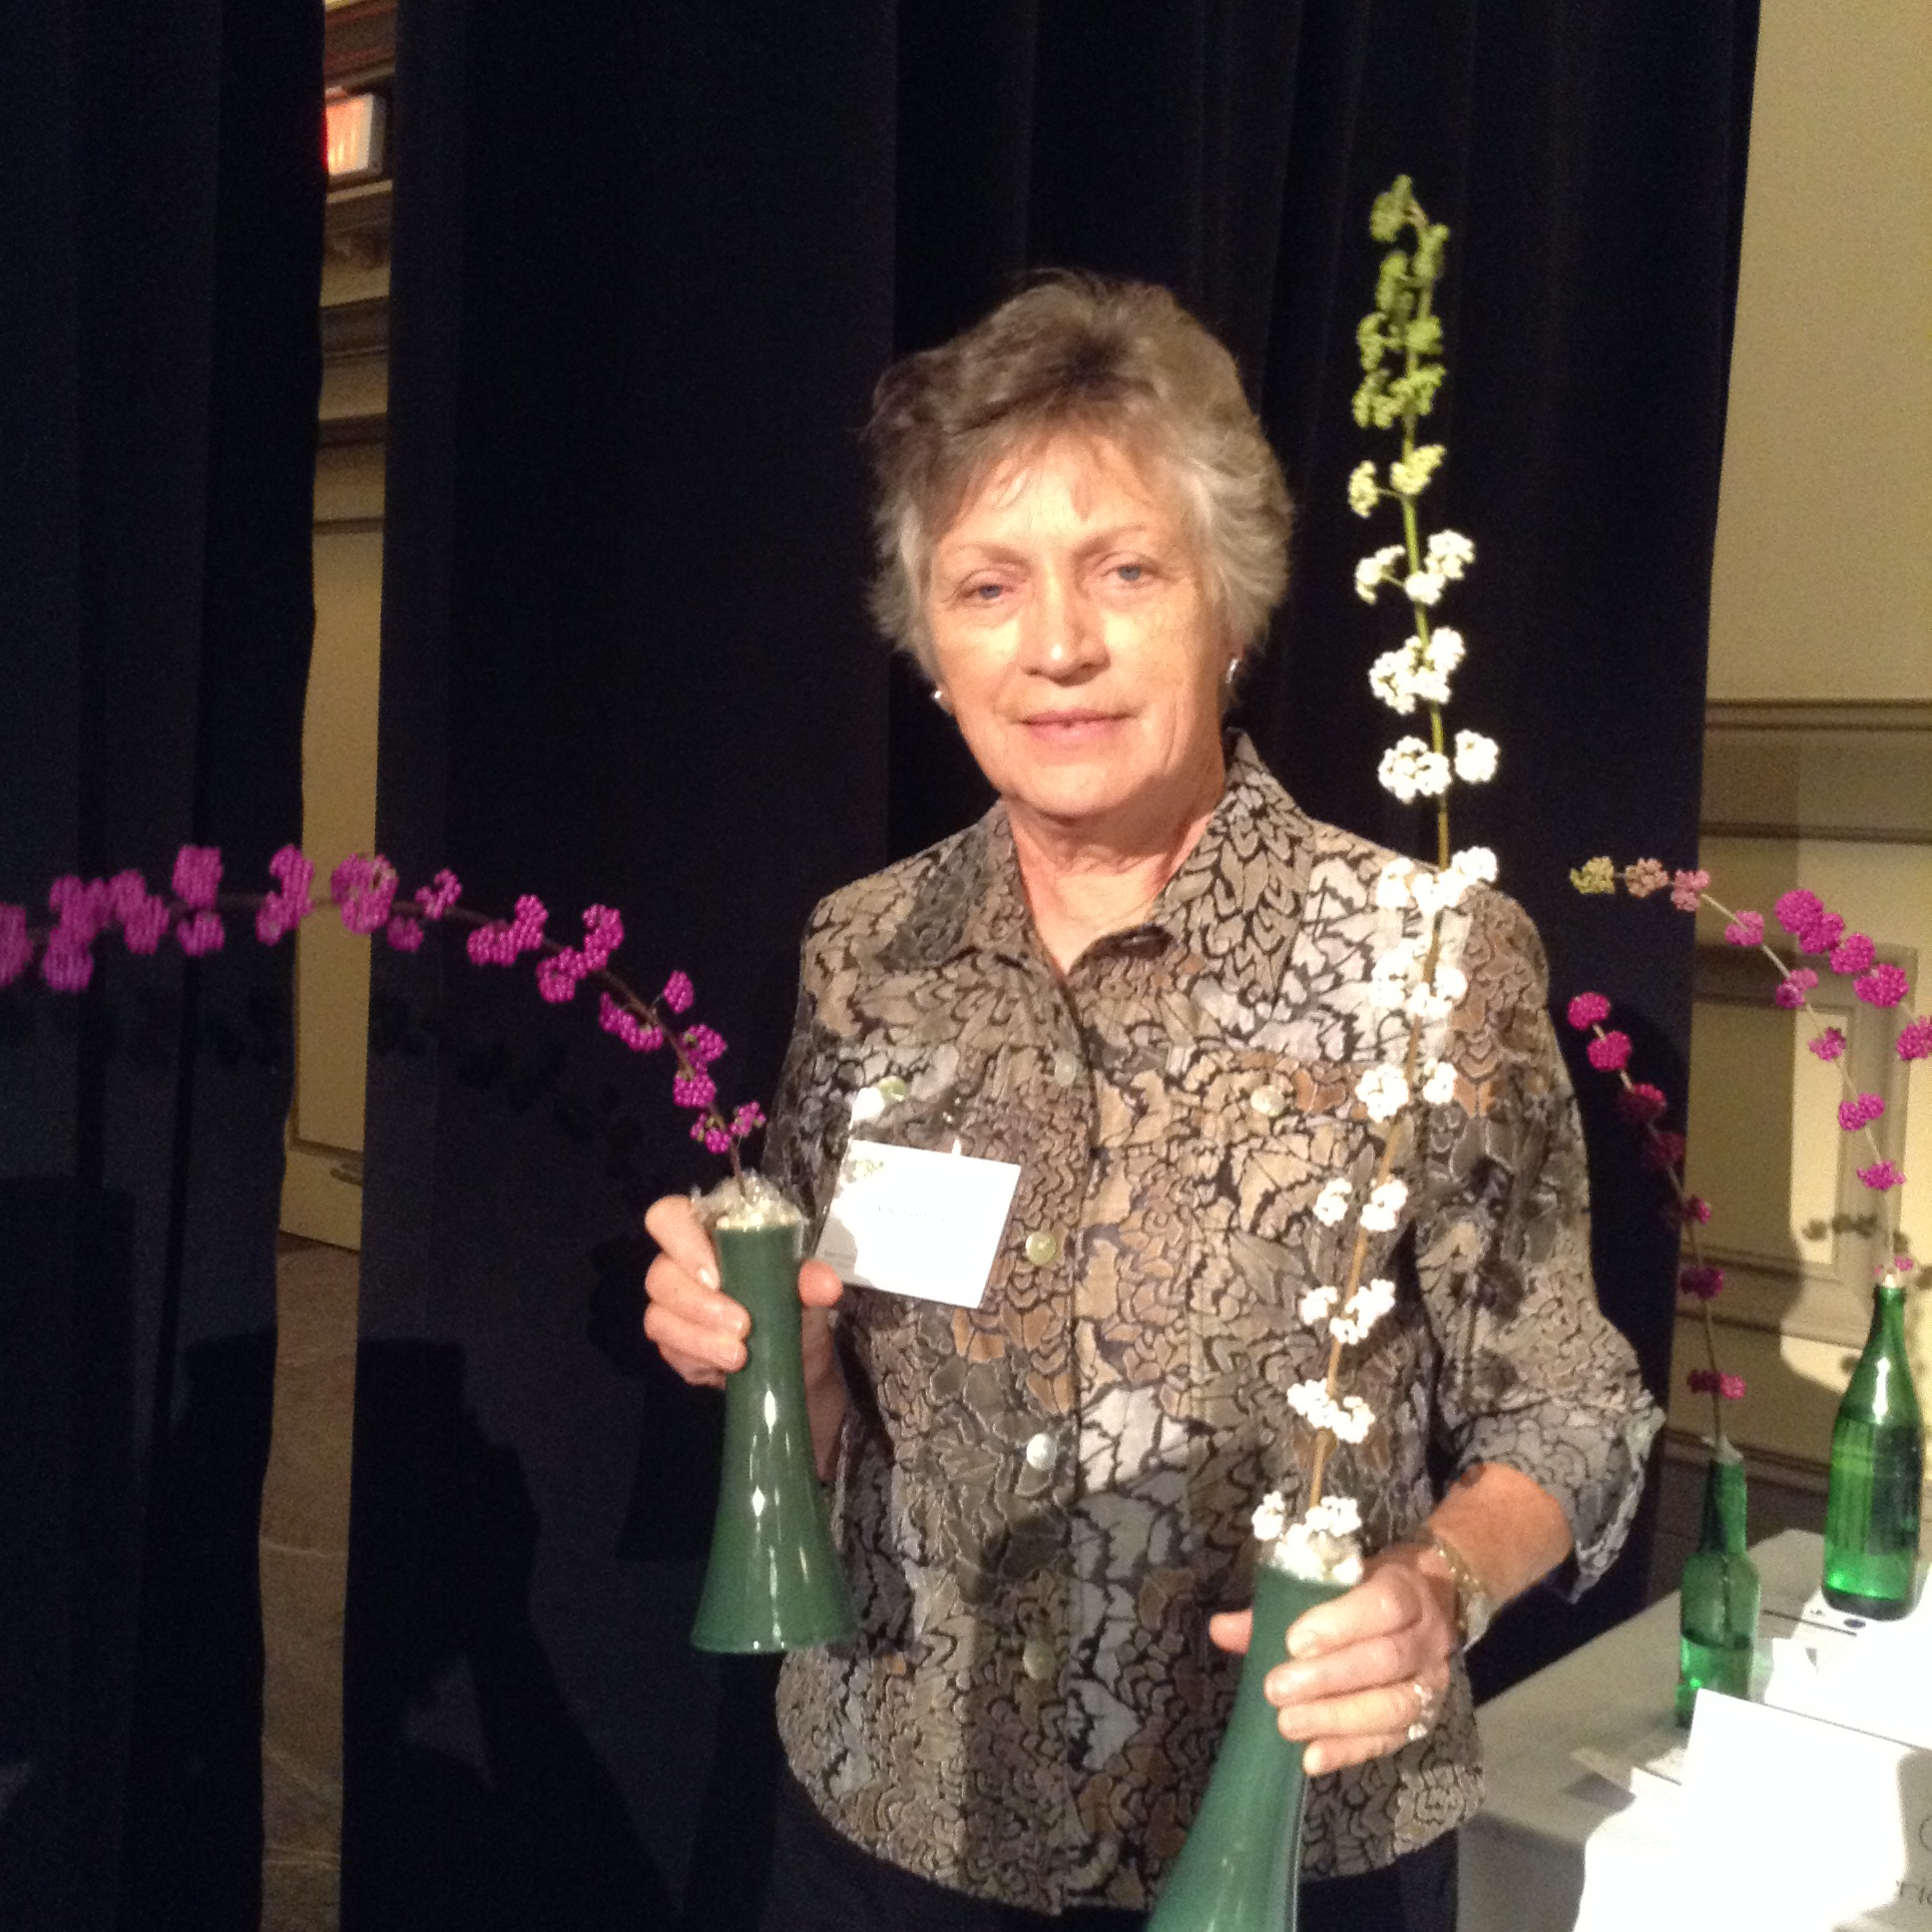 The spotswood garden club to benefit the restoration of historic gardens in virginia for Richmond home and garden show 2017